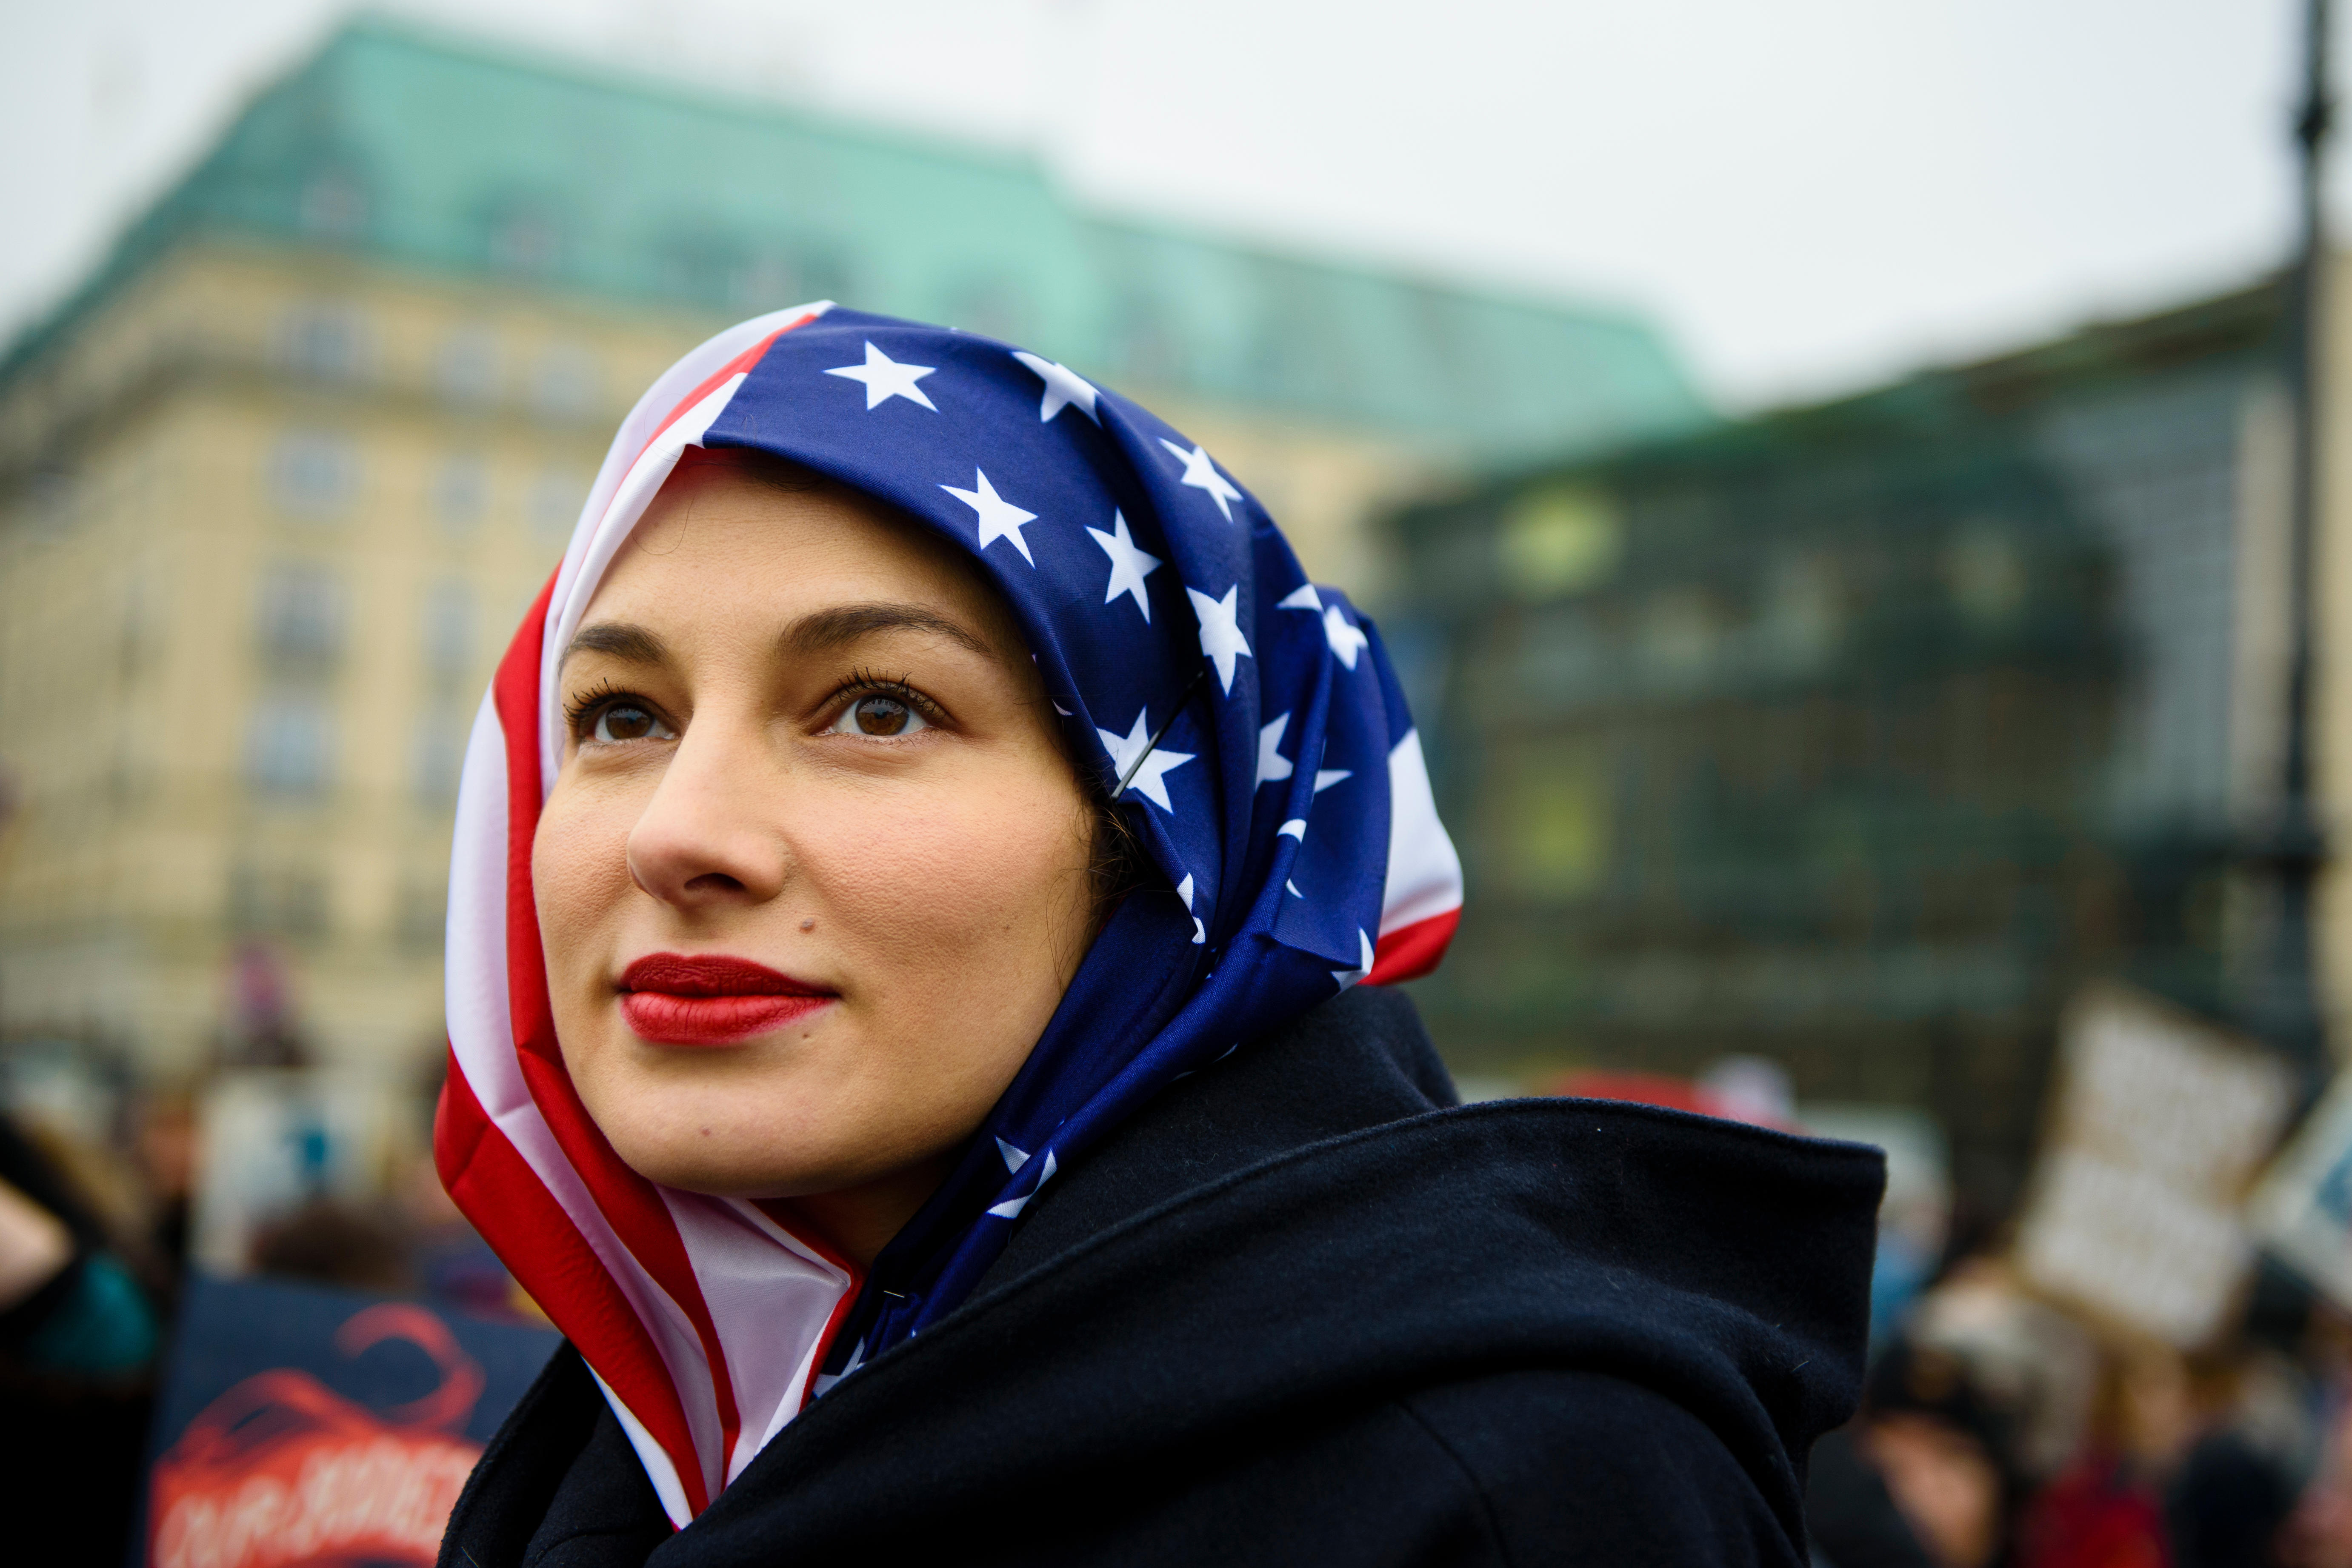 A woman wears a U.S. flag like a hijab during a protest of U.S. Democrats Abroad in front of the Brandenburg Gate in Berlin, on Jan. 21, 2017.